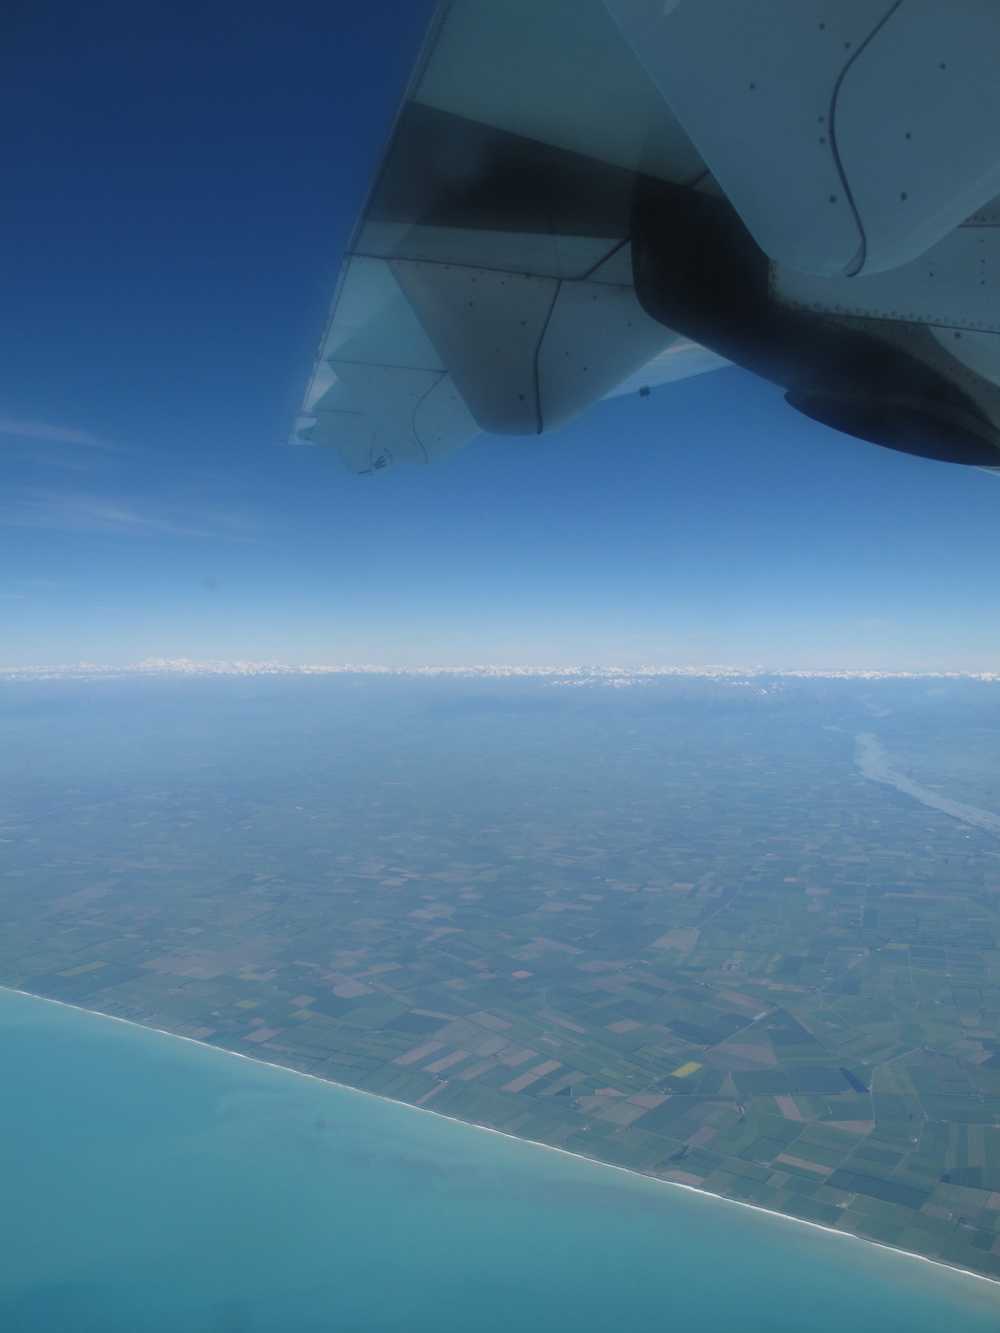 Flying out of New Zealand - plane wing, blue seas and rolling countryside.